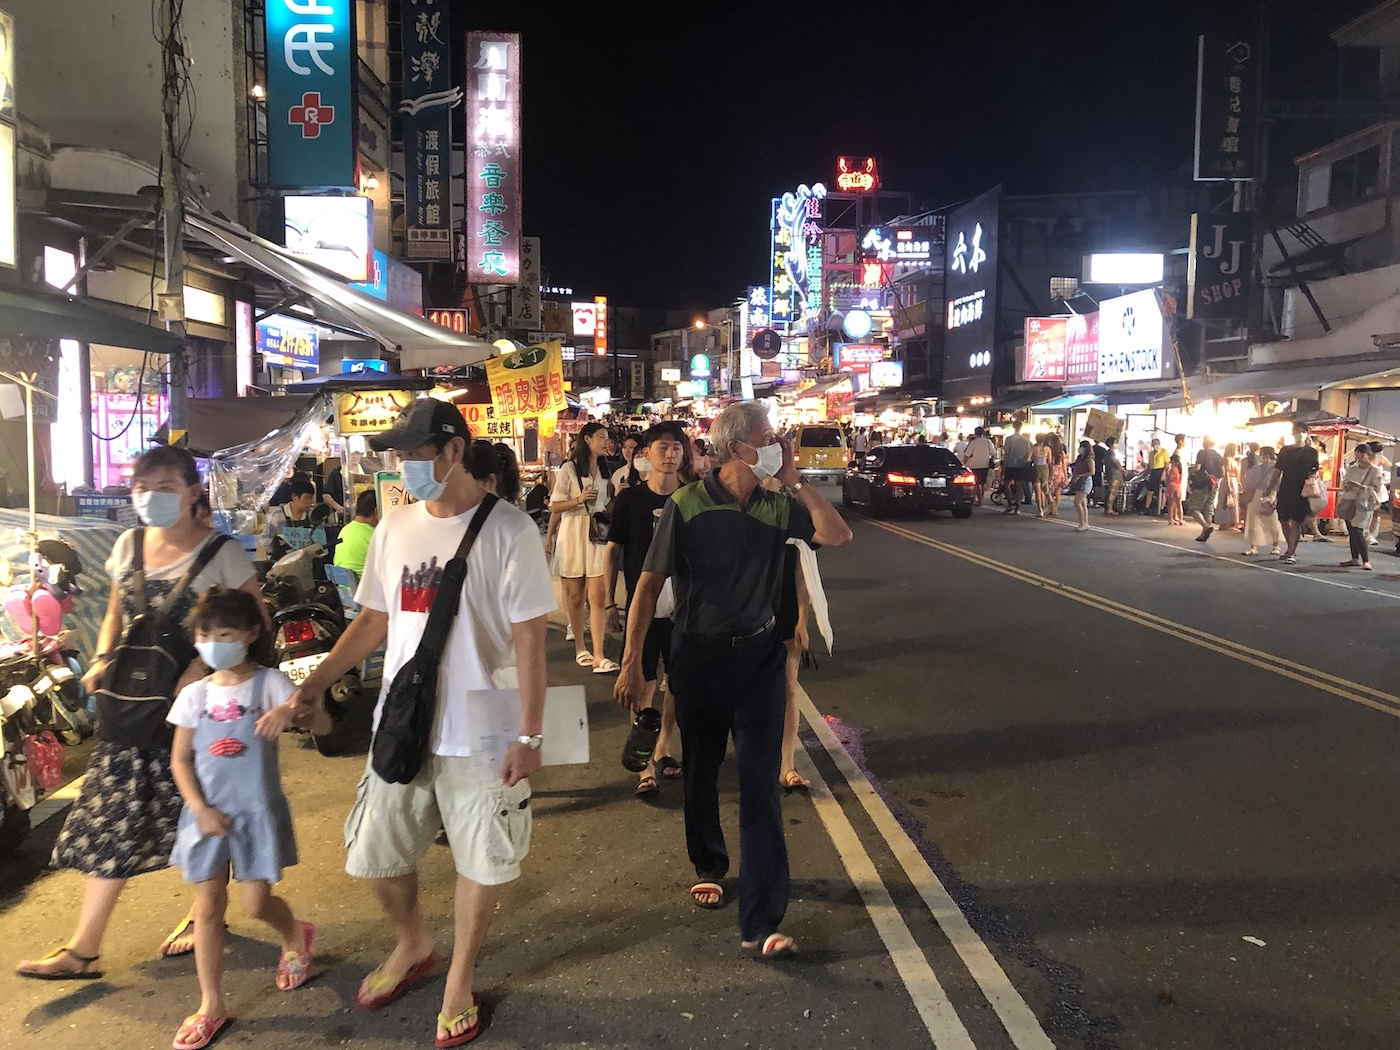 Domestic tourism offsetting the loss of foreign visitors in Asia